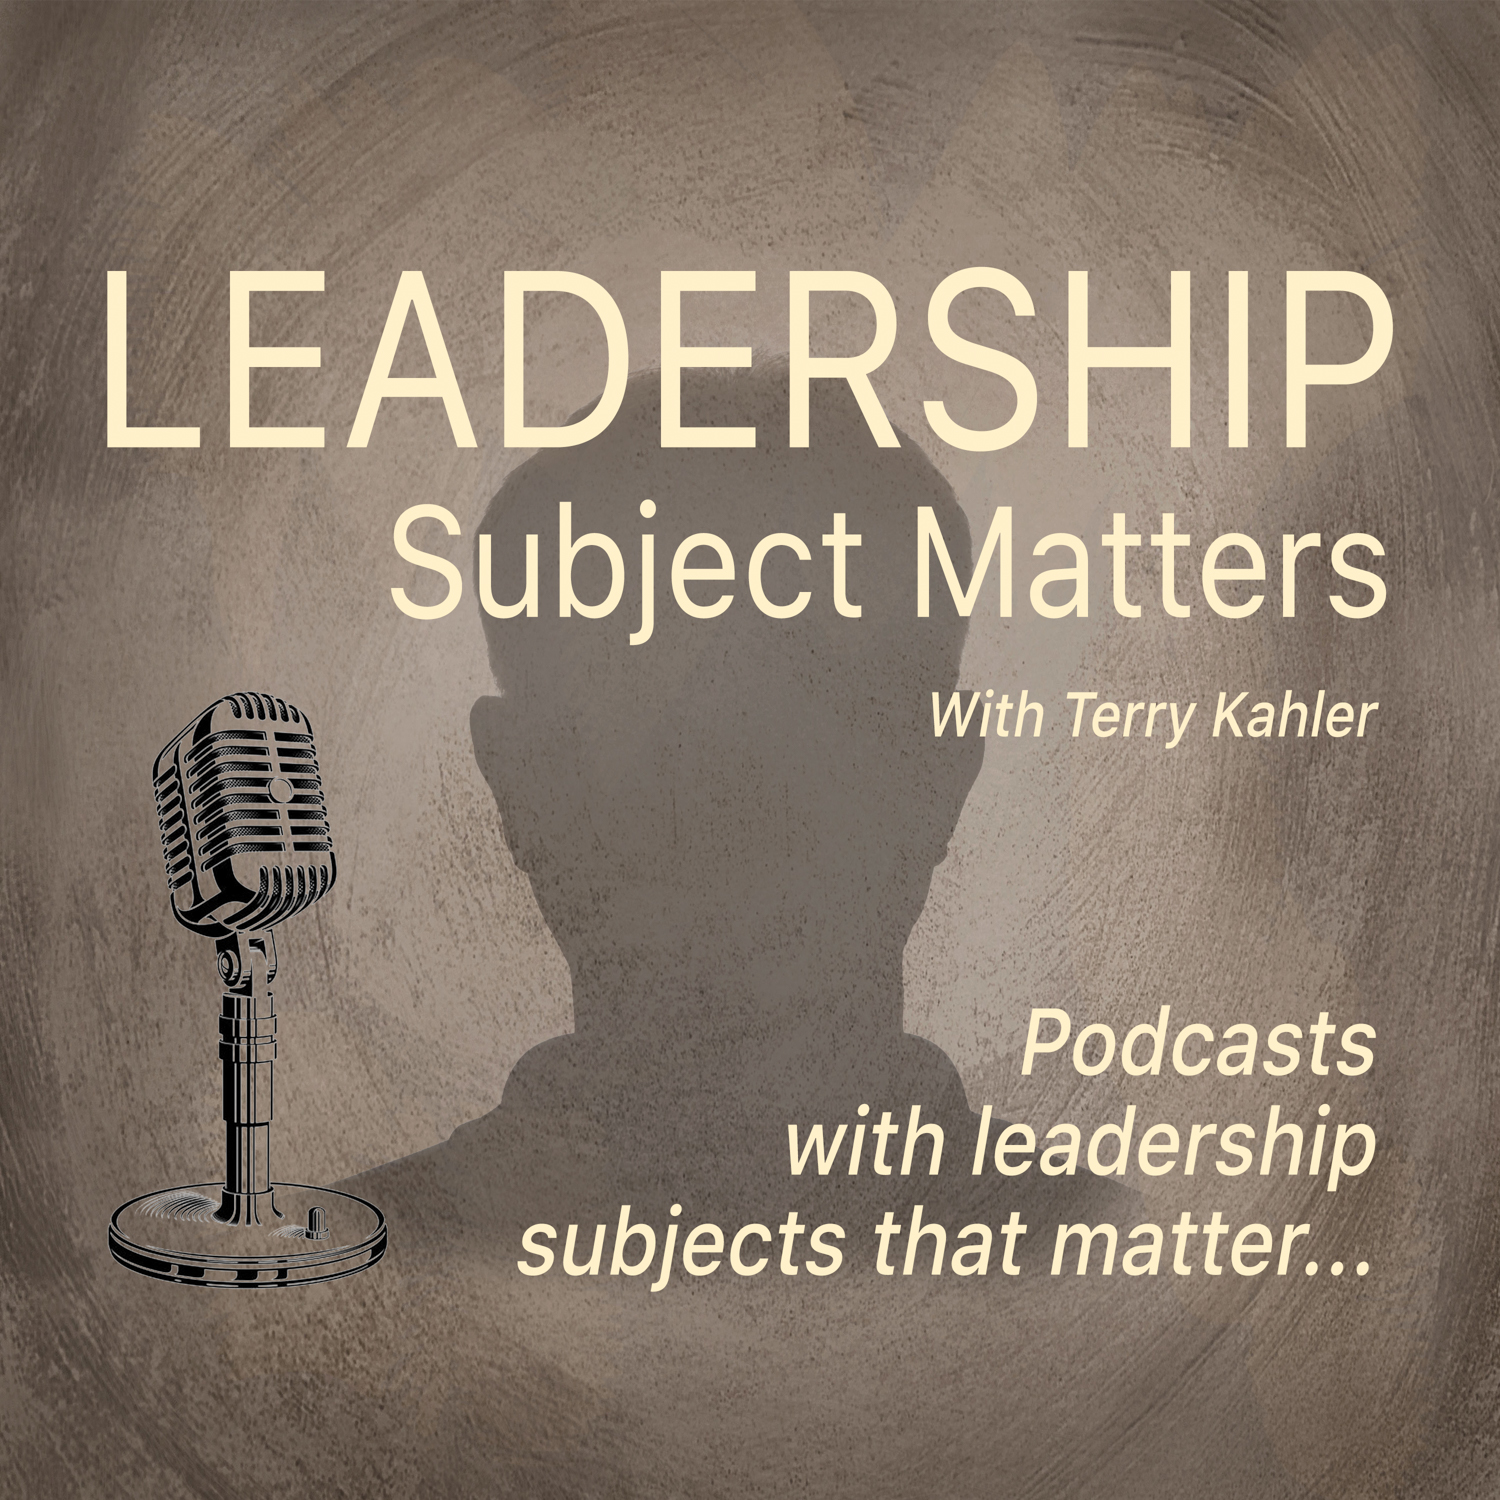 Leadership Subject Matters